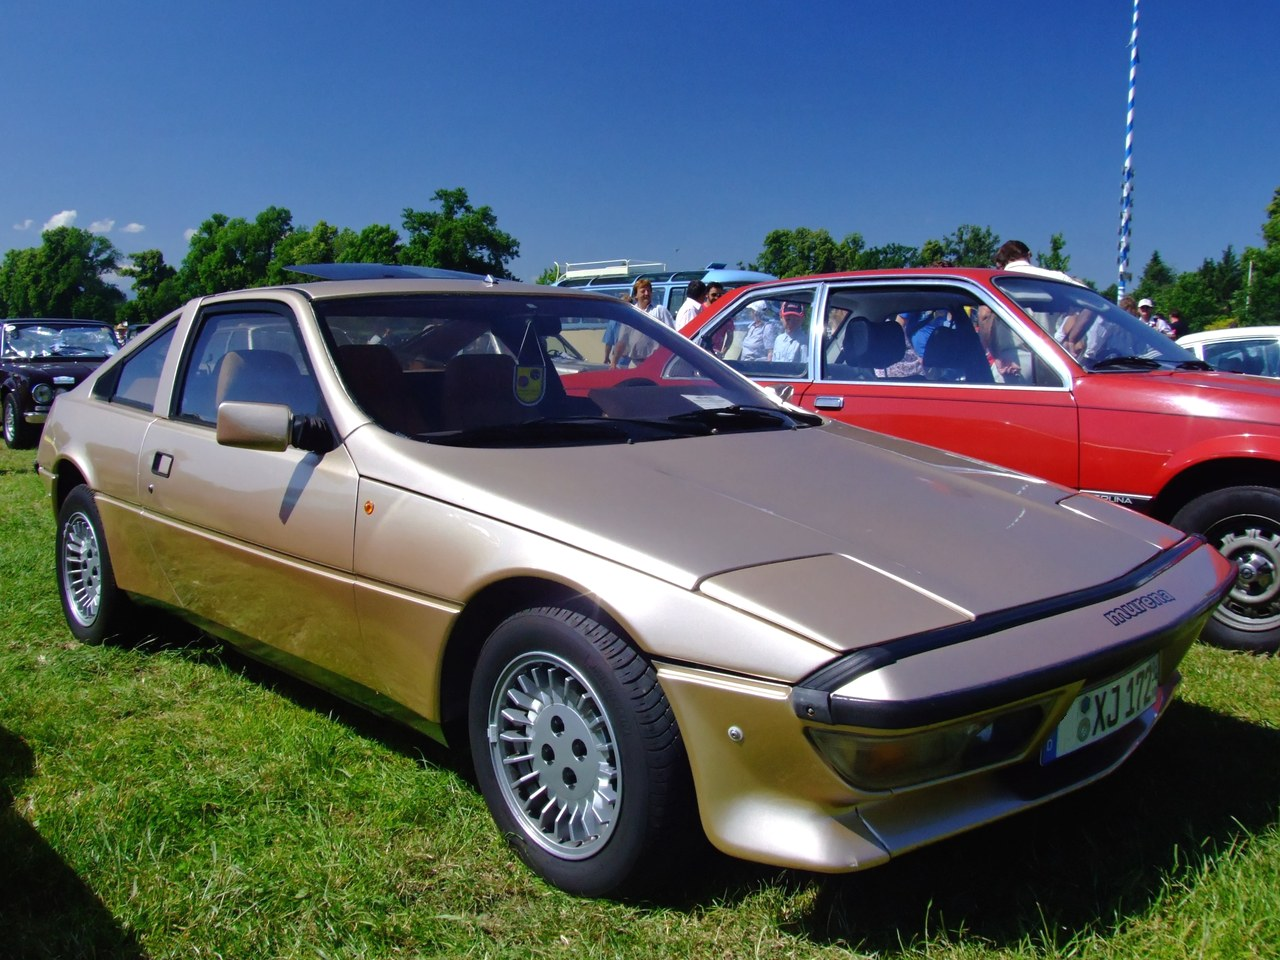 Talbot matra photo - 3